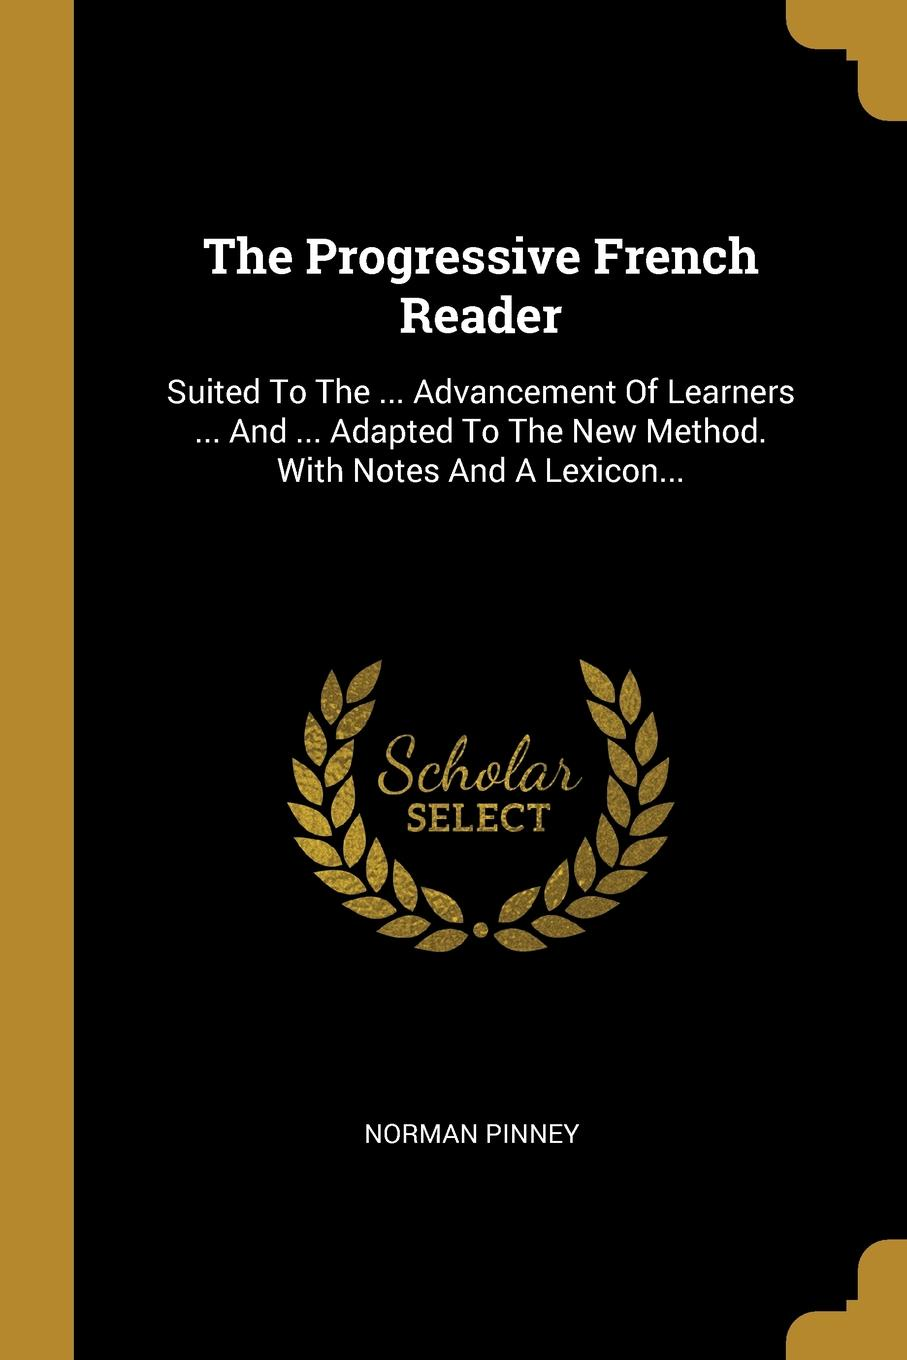 The Progressive French Reader. Suited To The ... Advancement Of Learners ... And ... Adapted To The New Method. With Notes And A Lexicon...